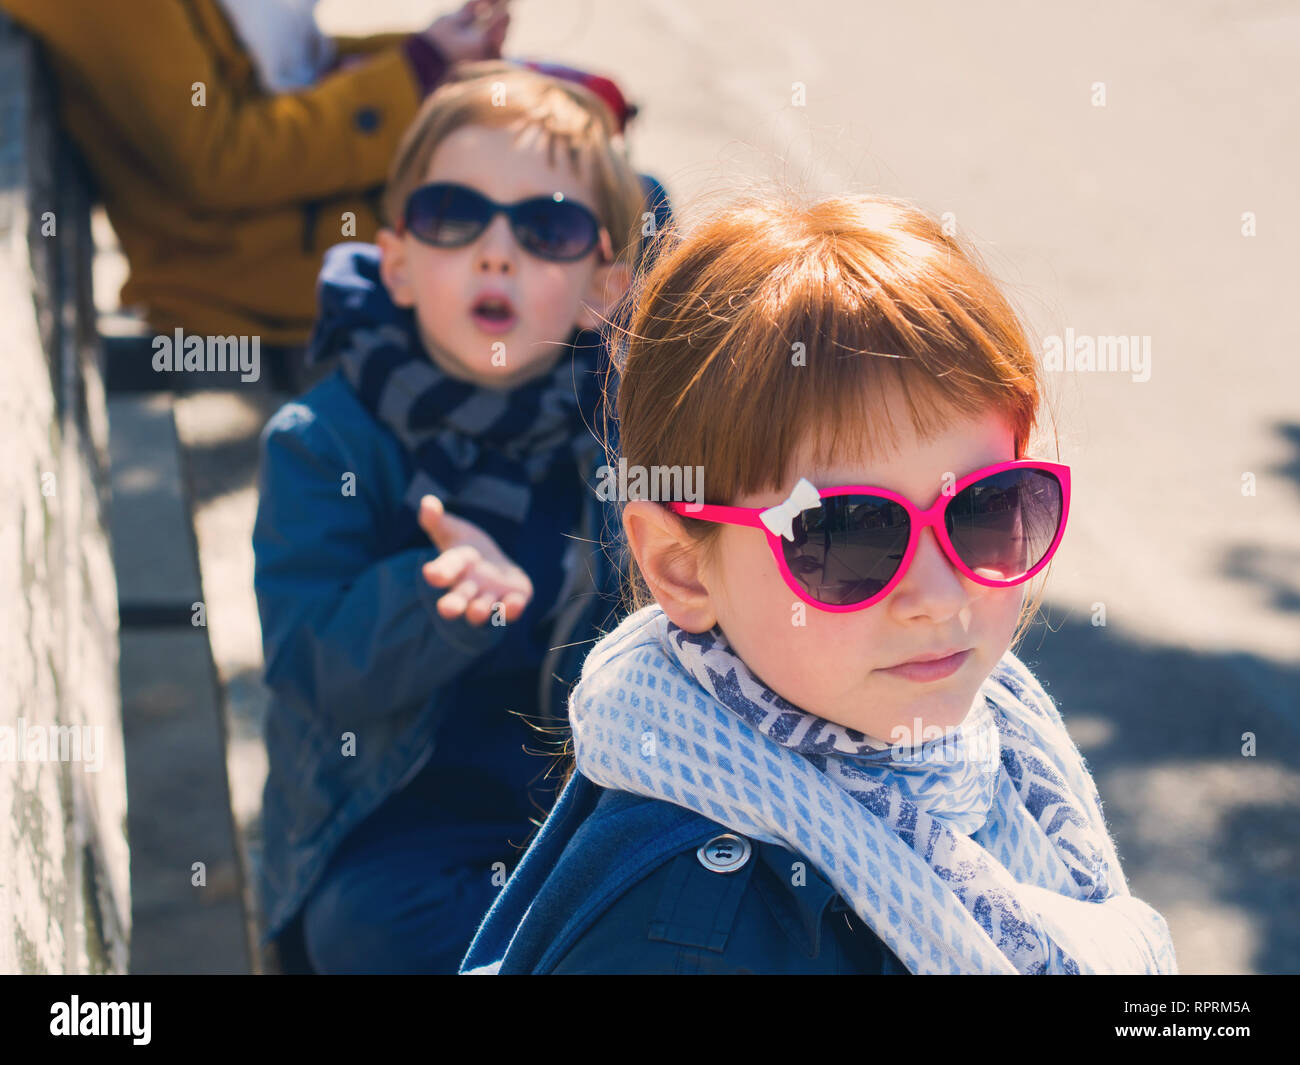 ce39dc0fc2c6 Little funny blonde boy and redhead girl outdoors with funny sun glasses.  Boy sending a kiss with hand